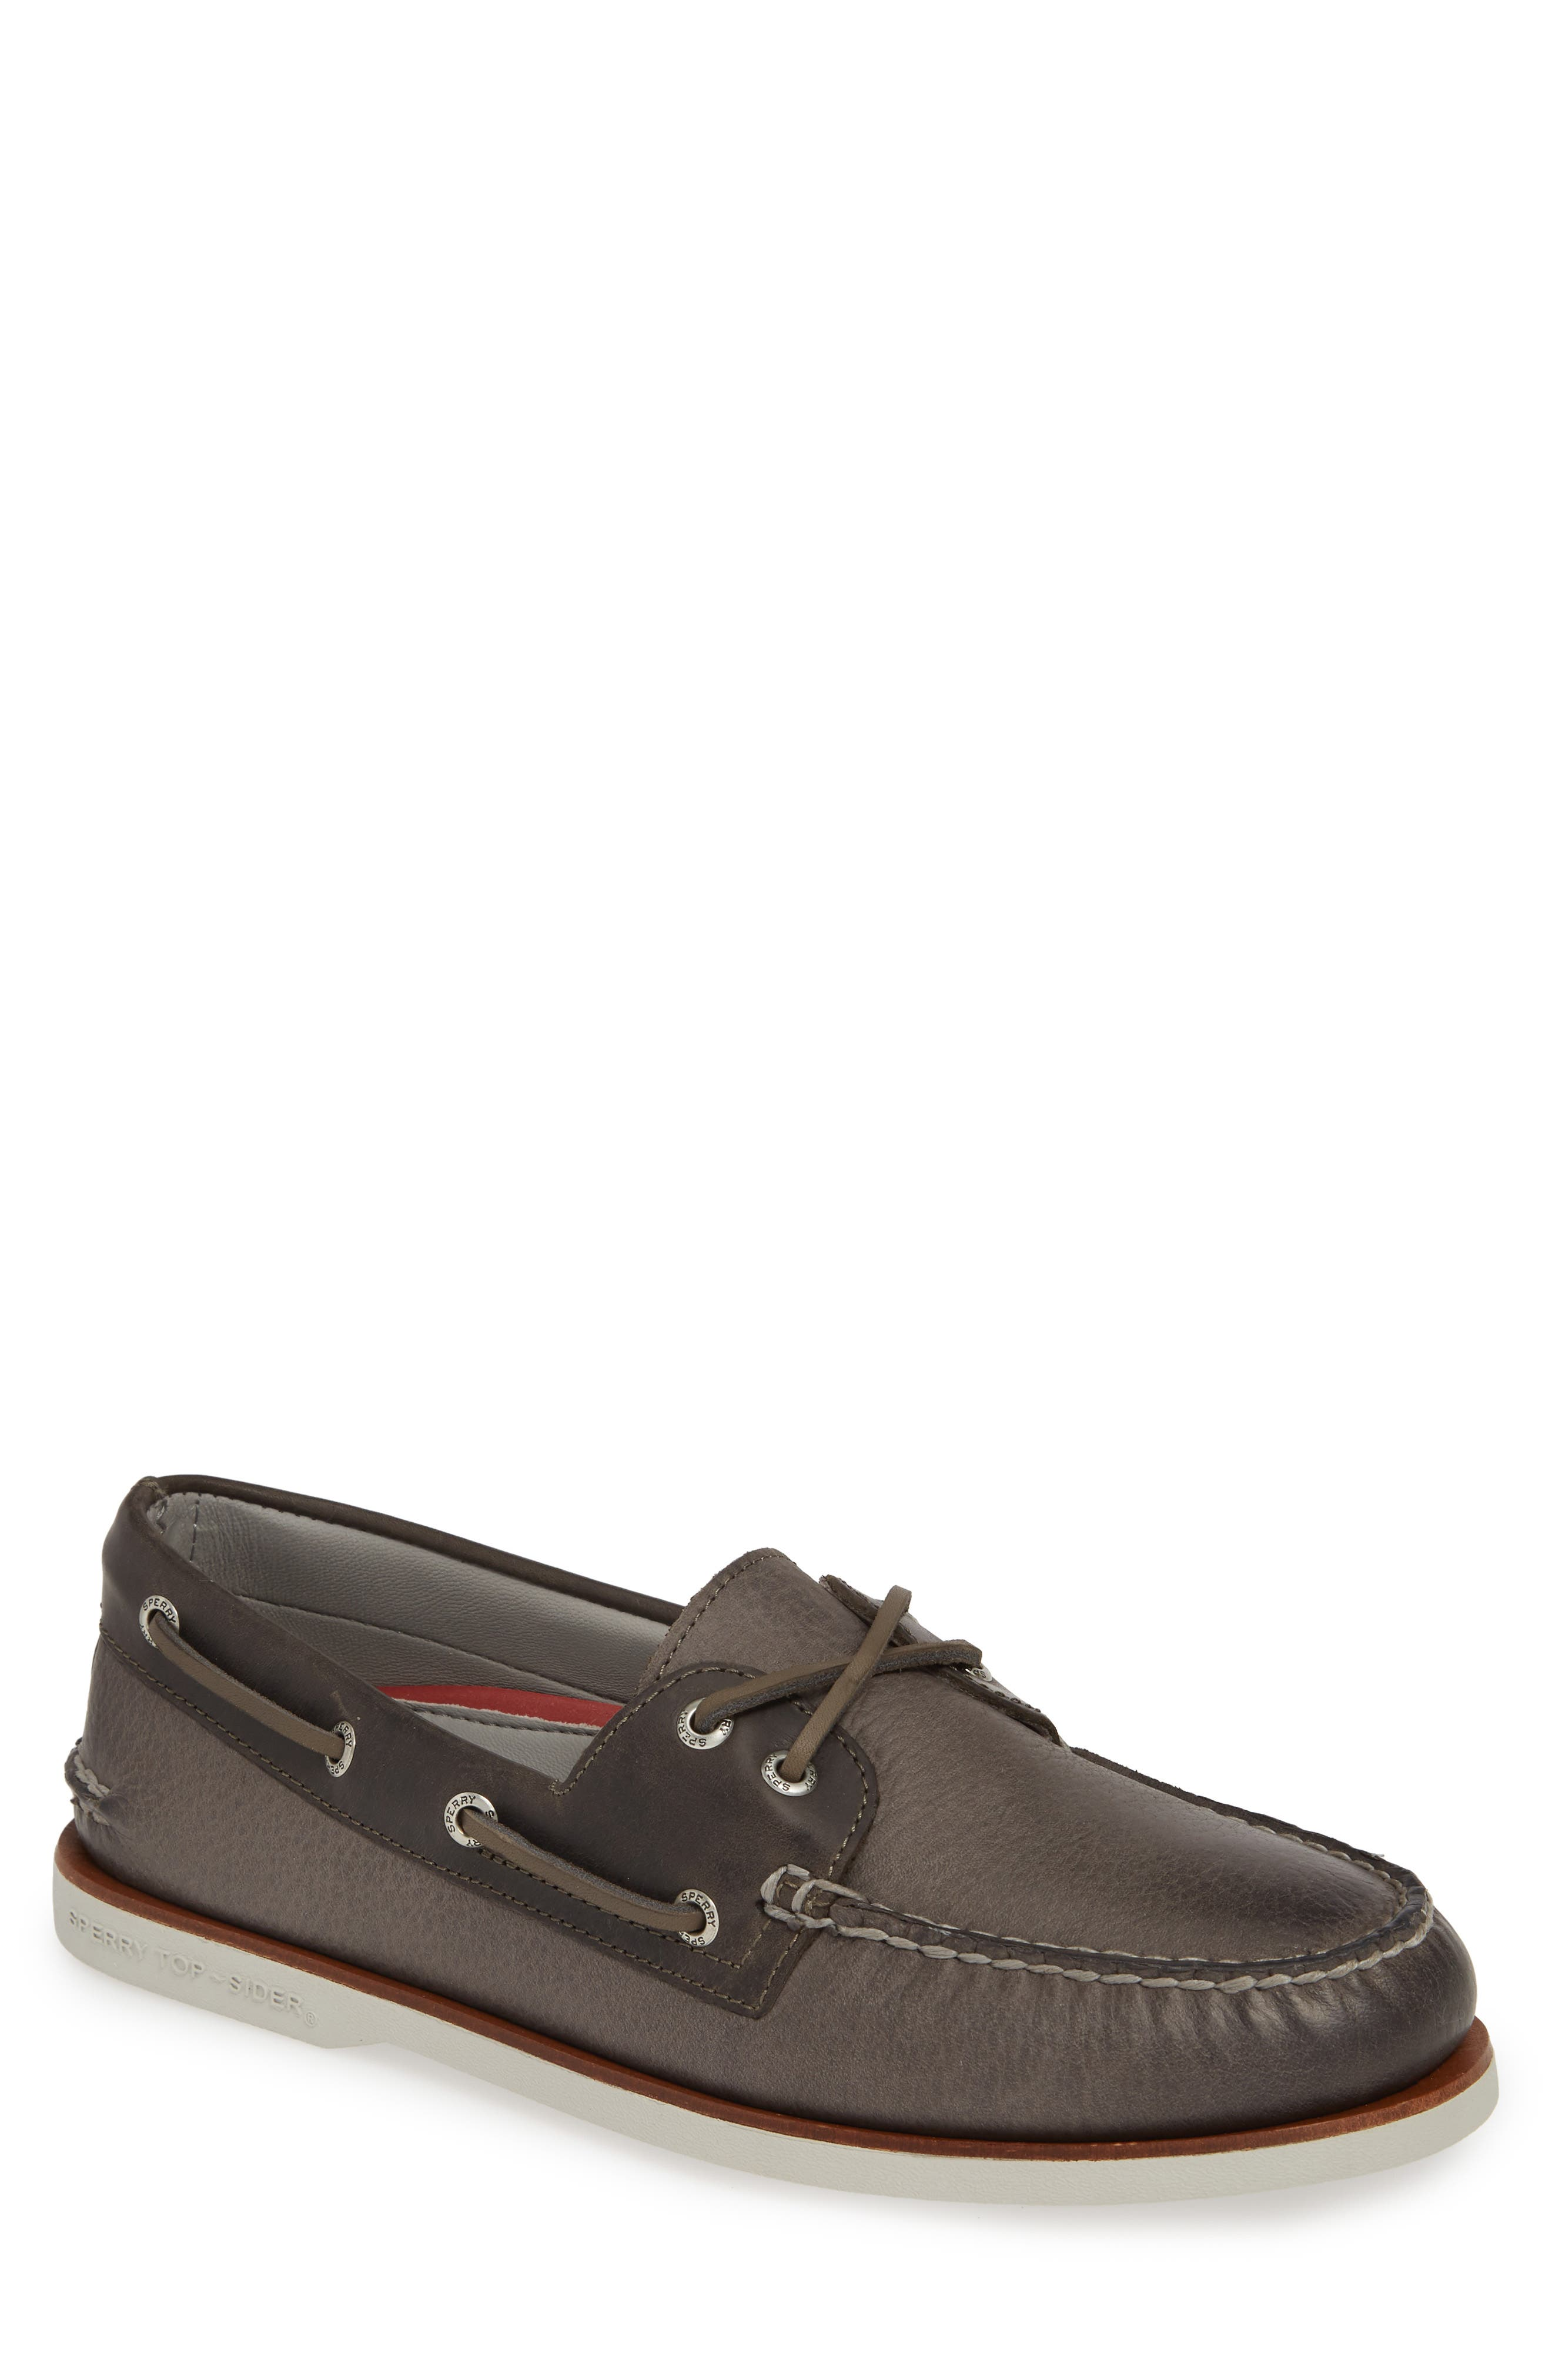 SPERRY, Authentic Original Gold Rivinton Boat Shoe, Main thumbnail 1, color, GREY